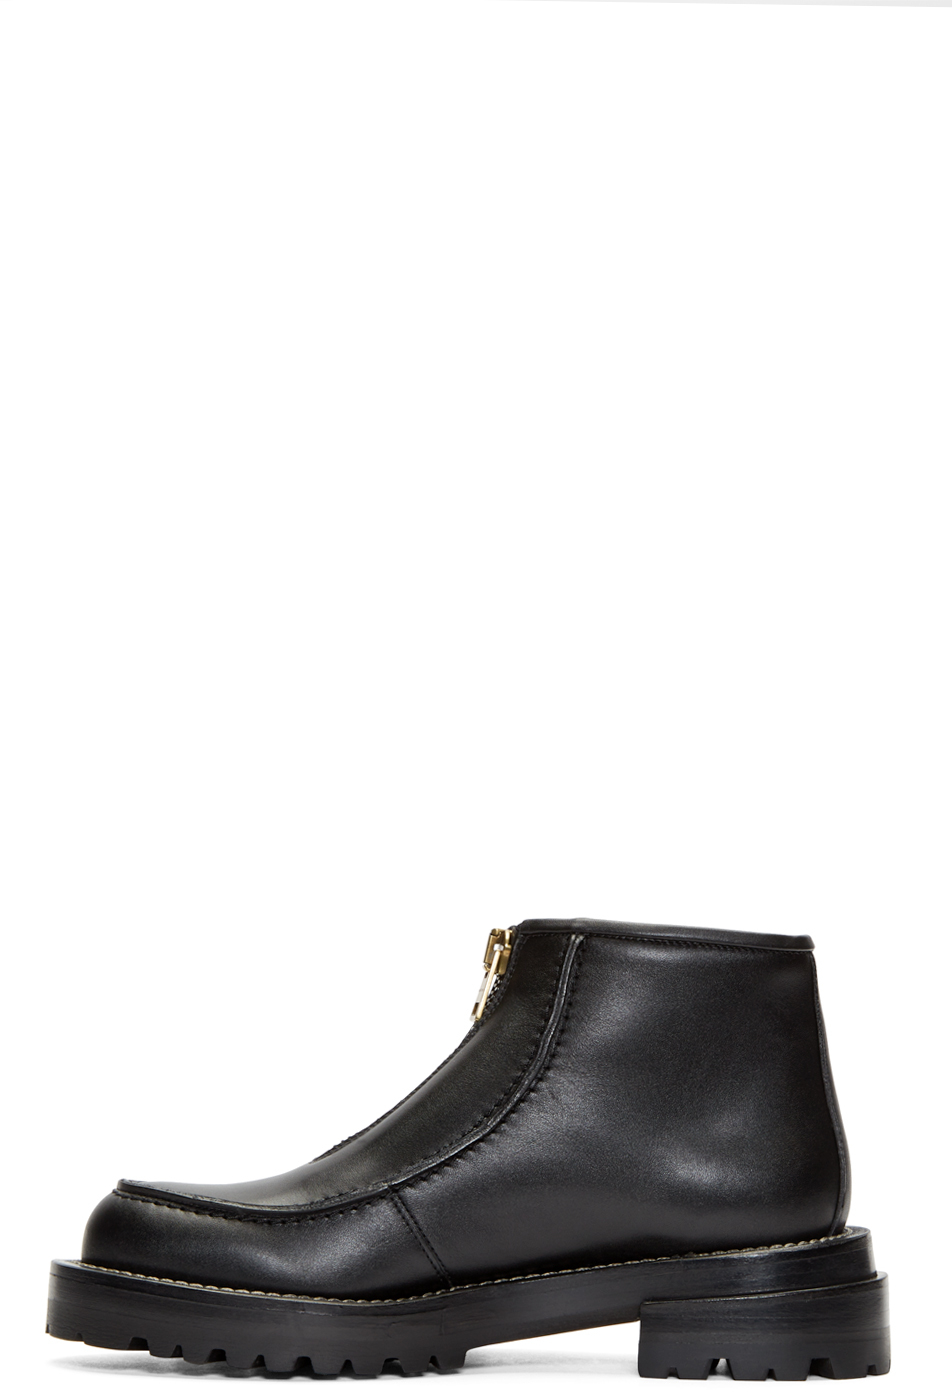 Marni Zipped Leather Ankle Boots 4REy7a